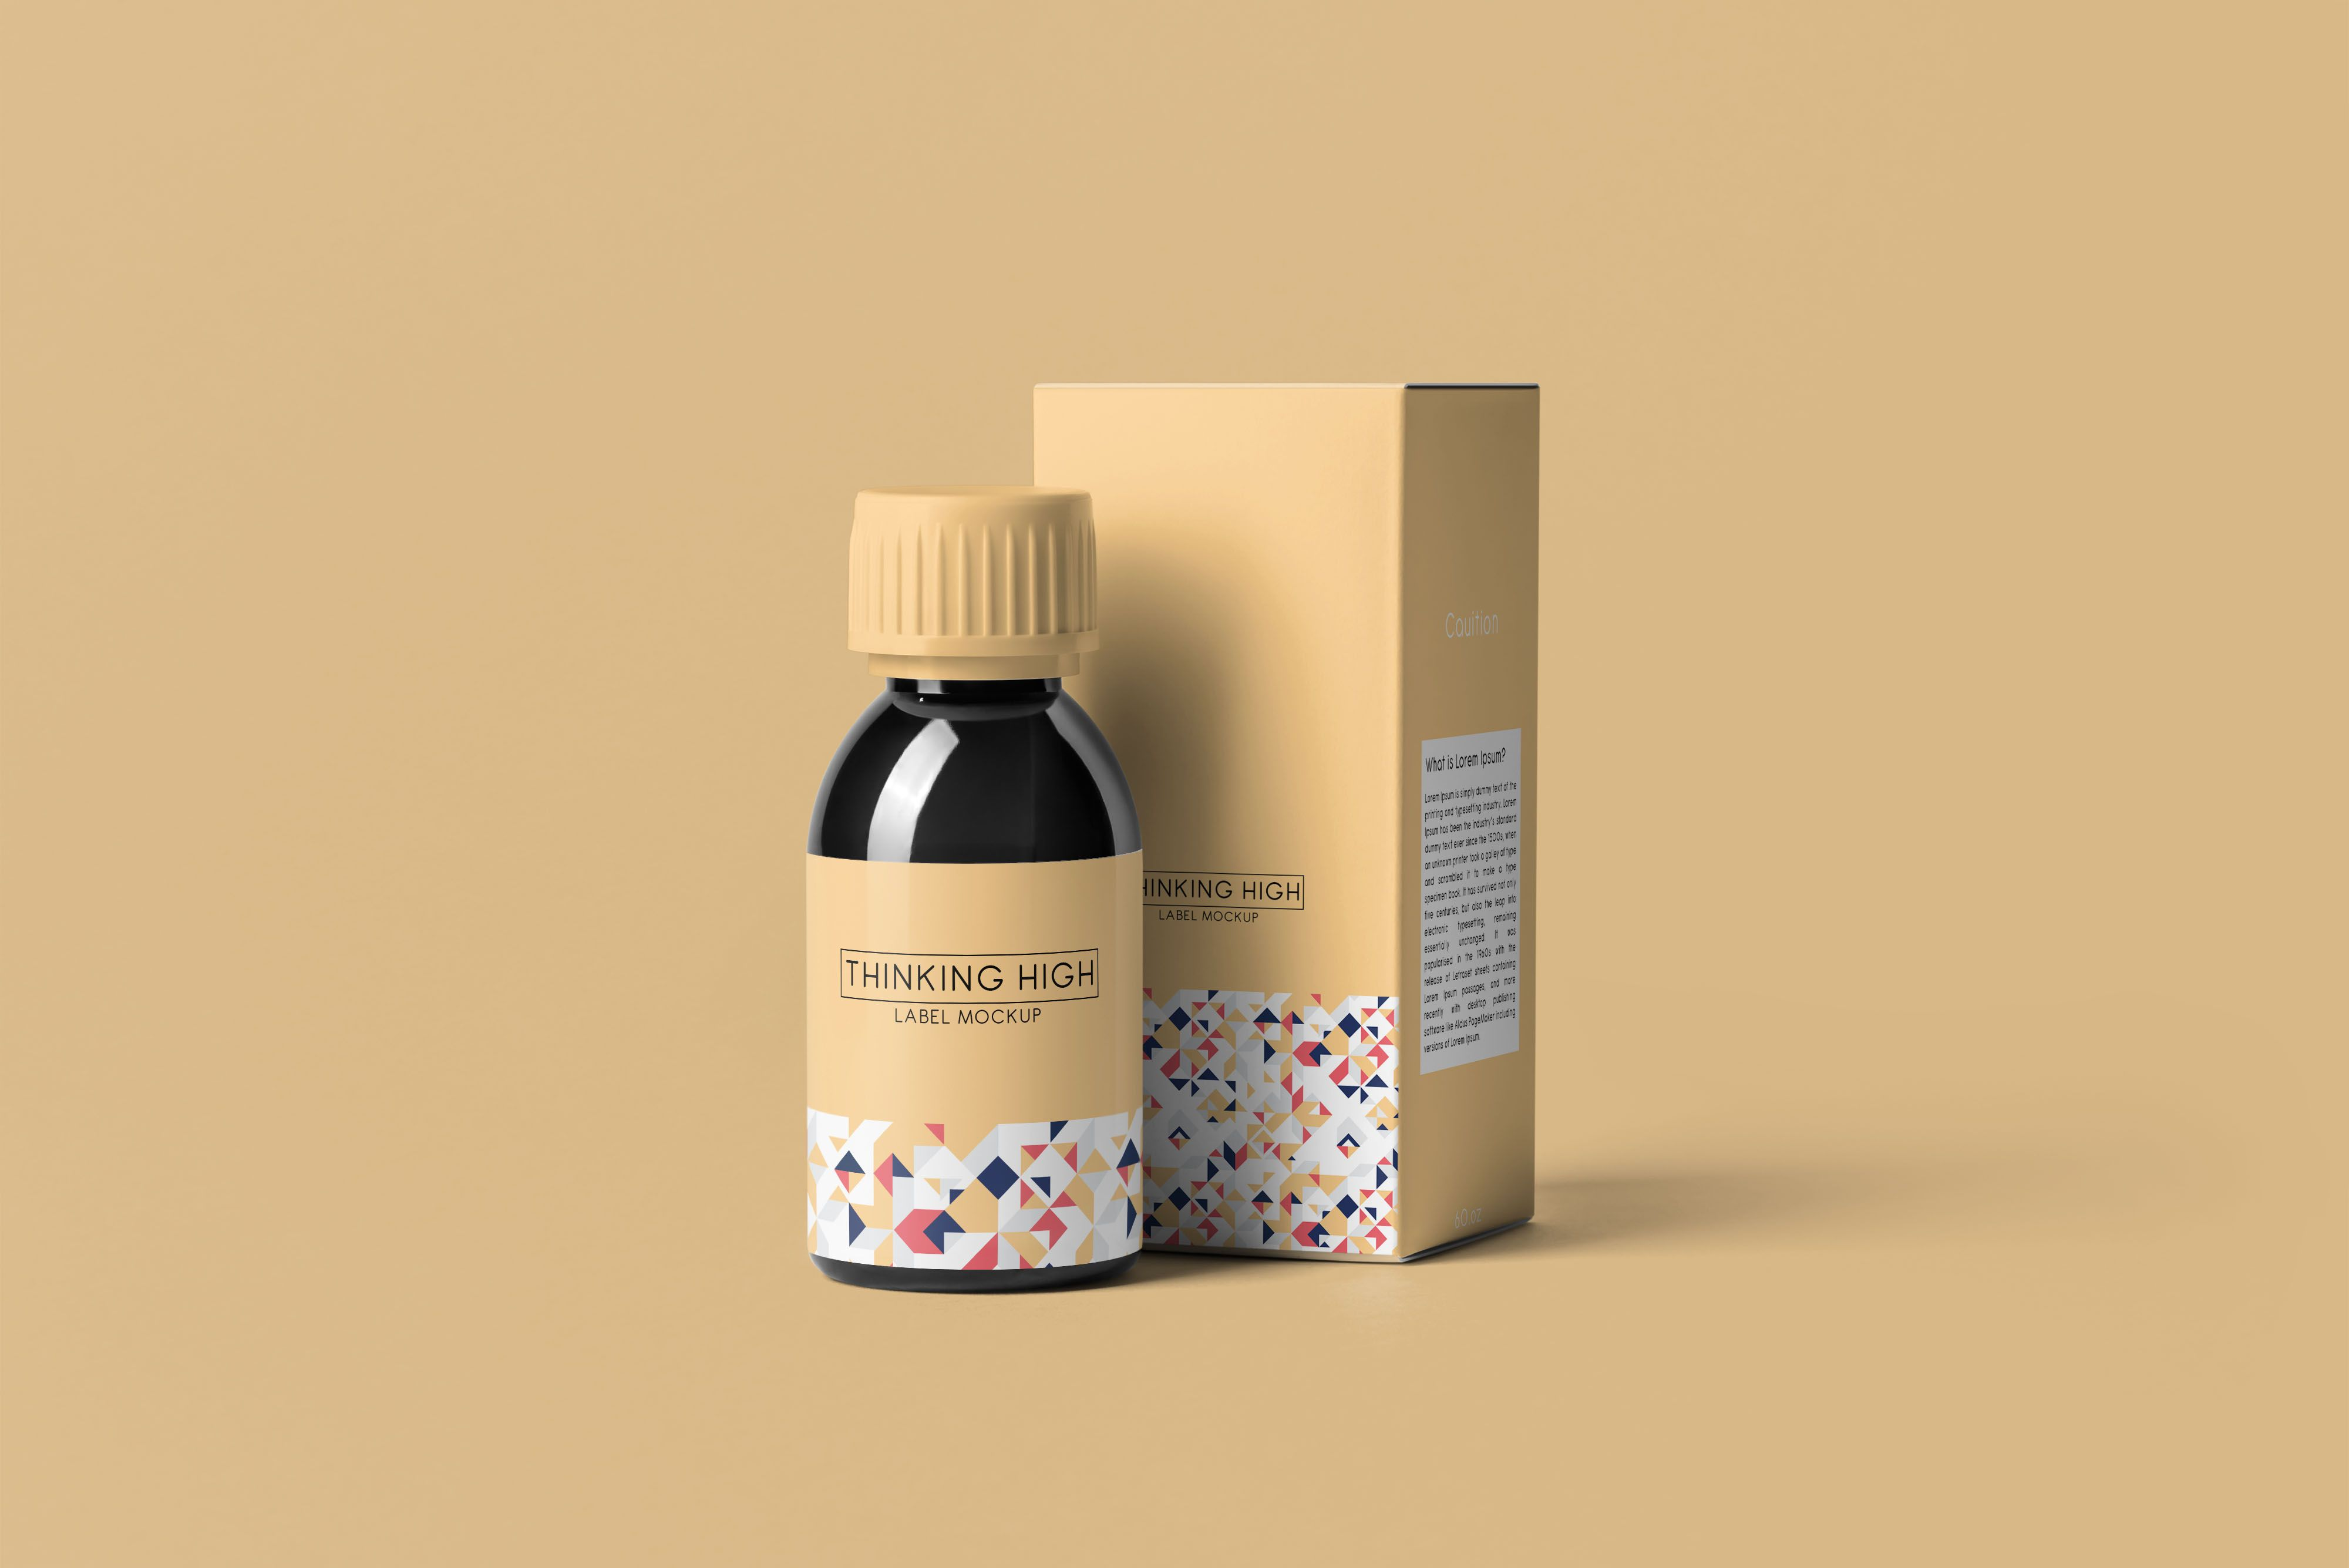 Download In Order To Help You Present A Logo Design Mockup To Your Client In A Super Polished Way We Ve Gathered The In 2021 Packaging Mockup Bottle Mockup Logo Design Mockup